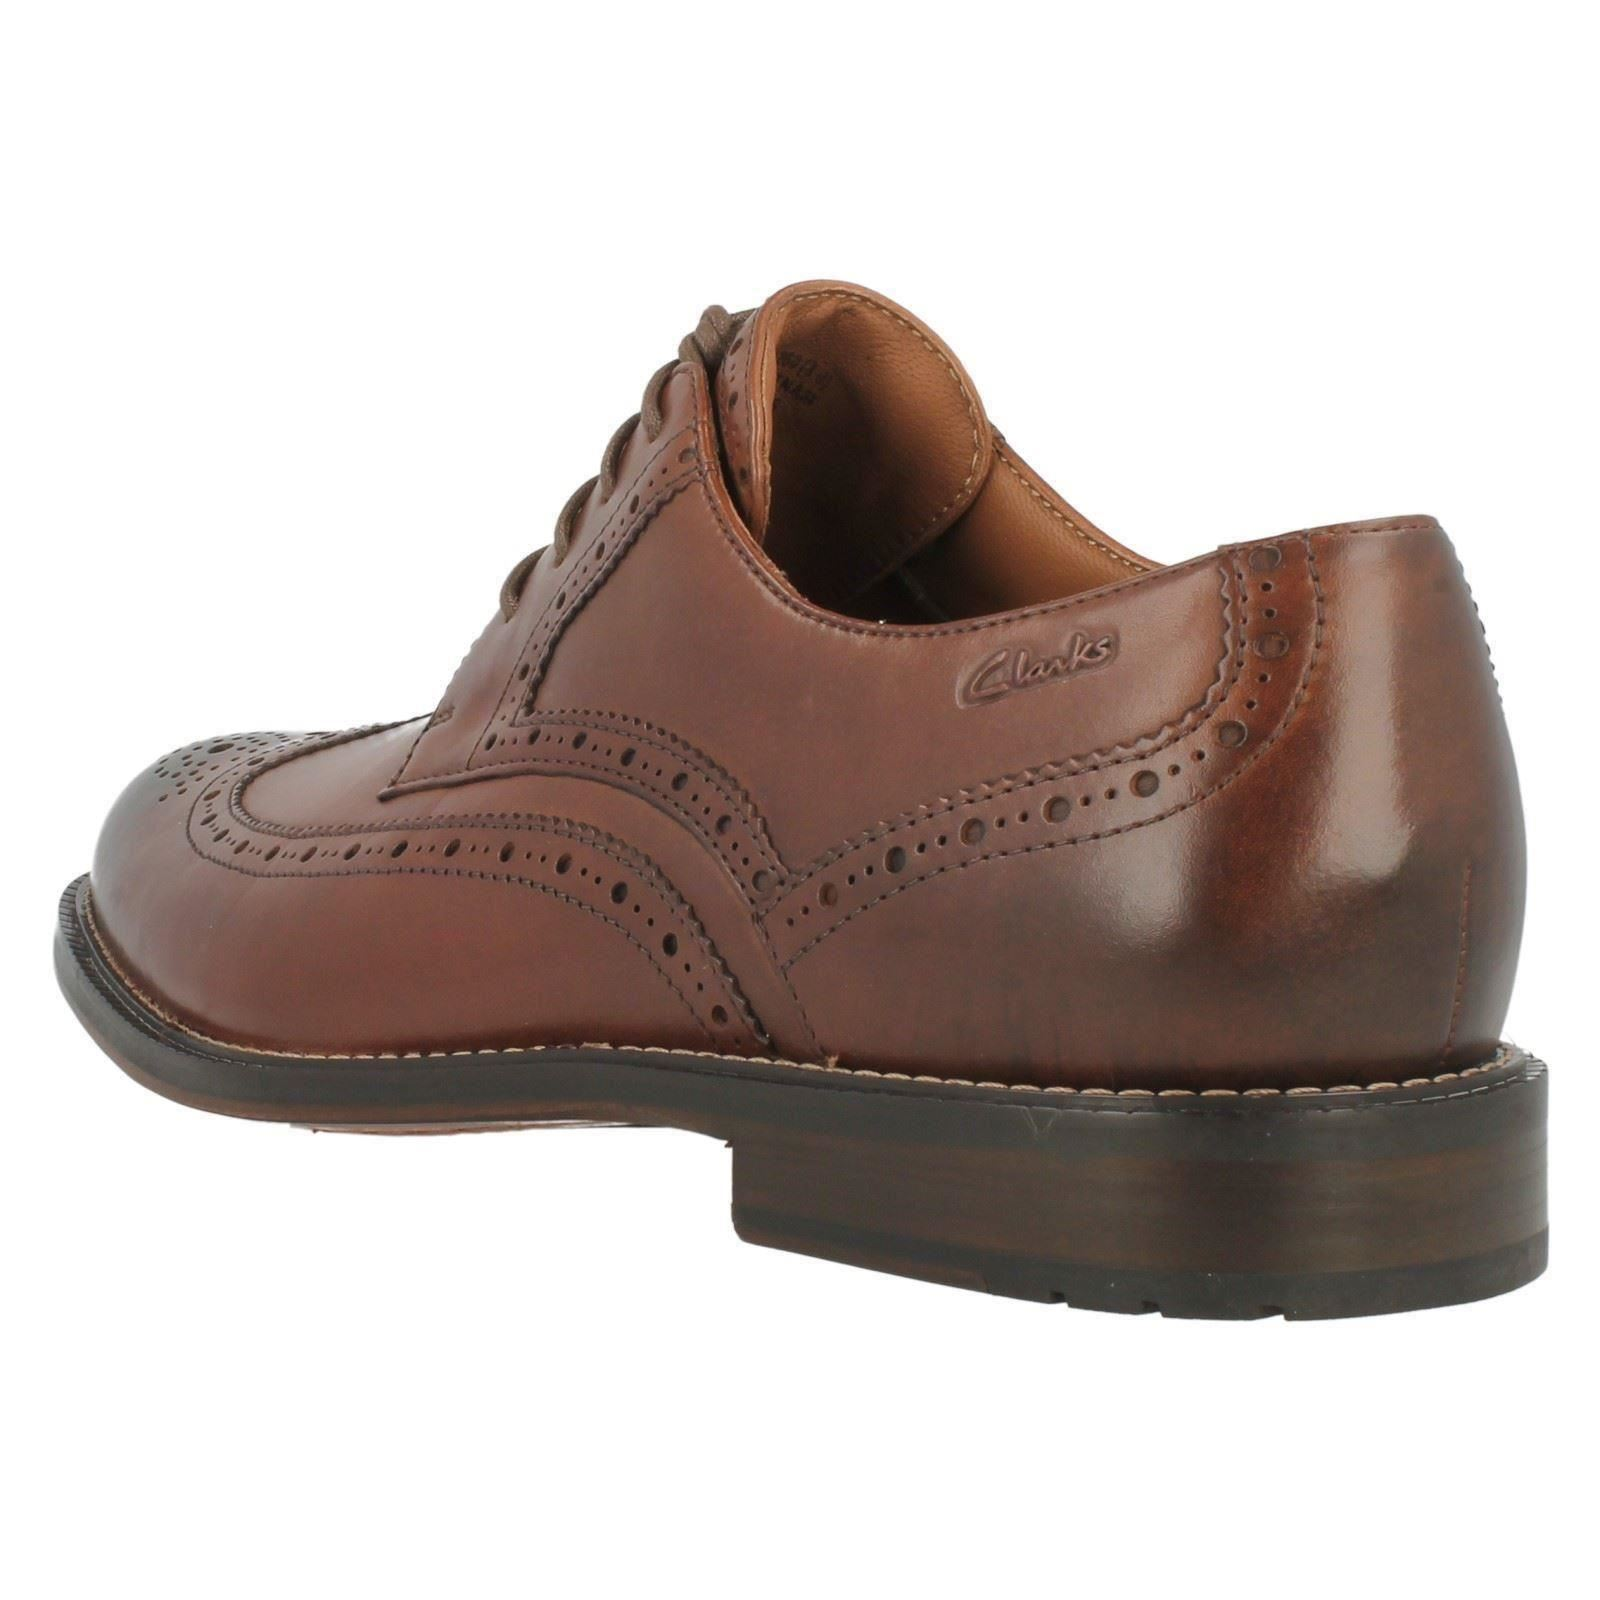 Mens Clarks Formal Lace Up Brogue Shoes Dorset Limit